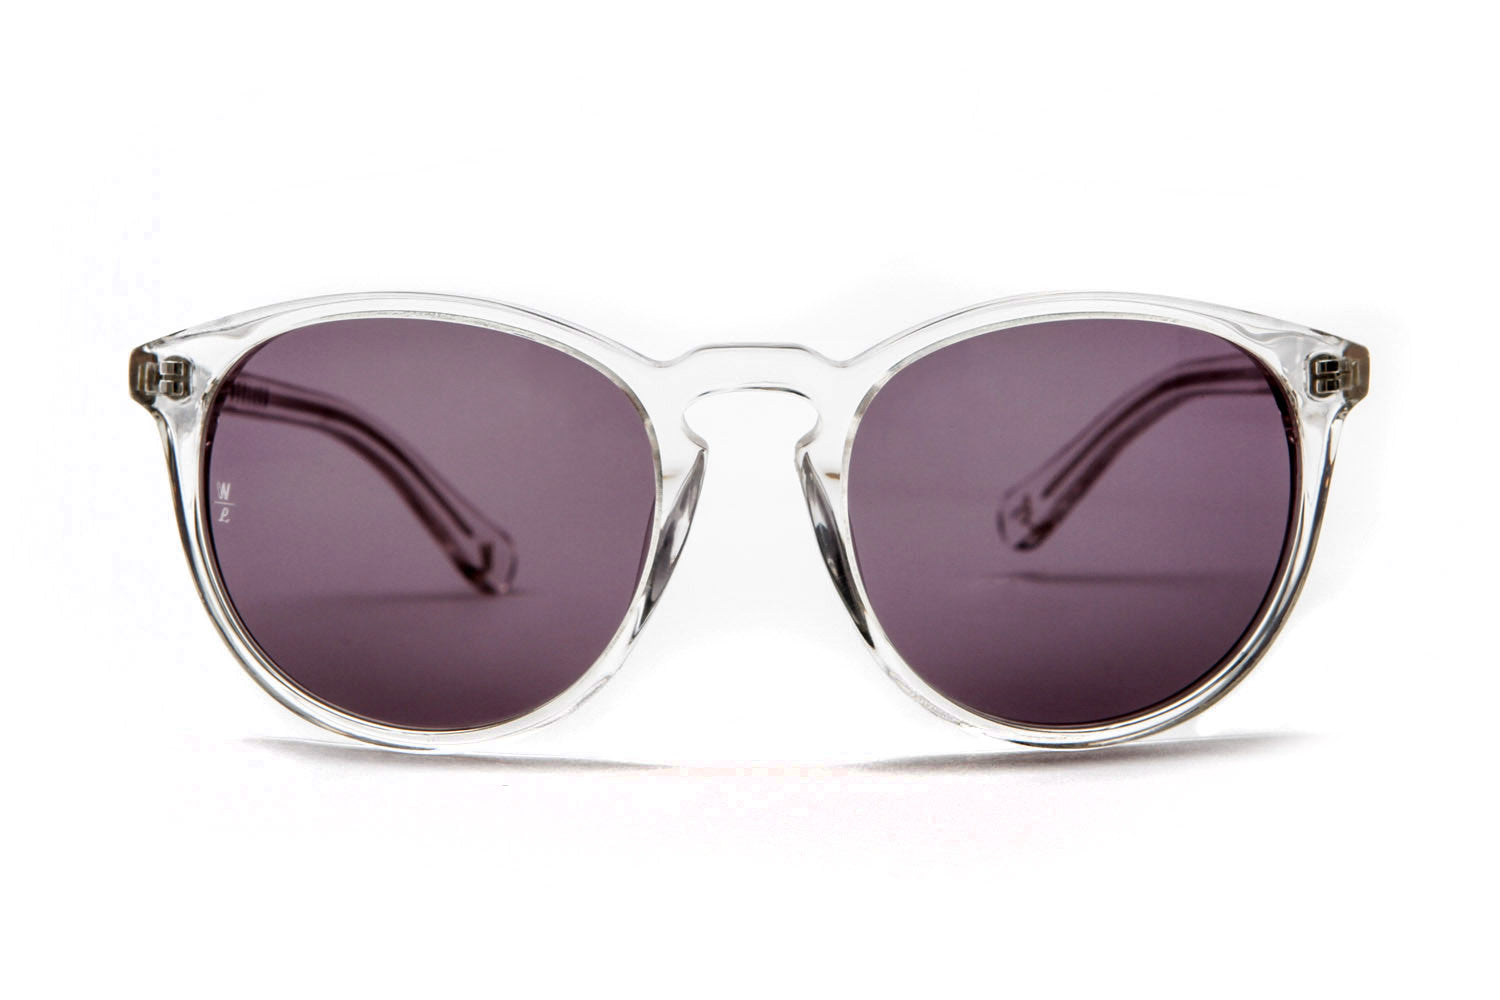 b26fe44fec55 Beaumont Sunglasses (Clear Gray)